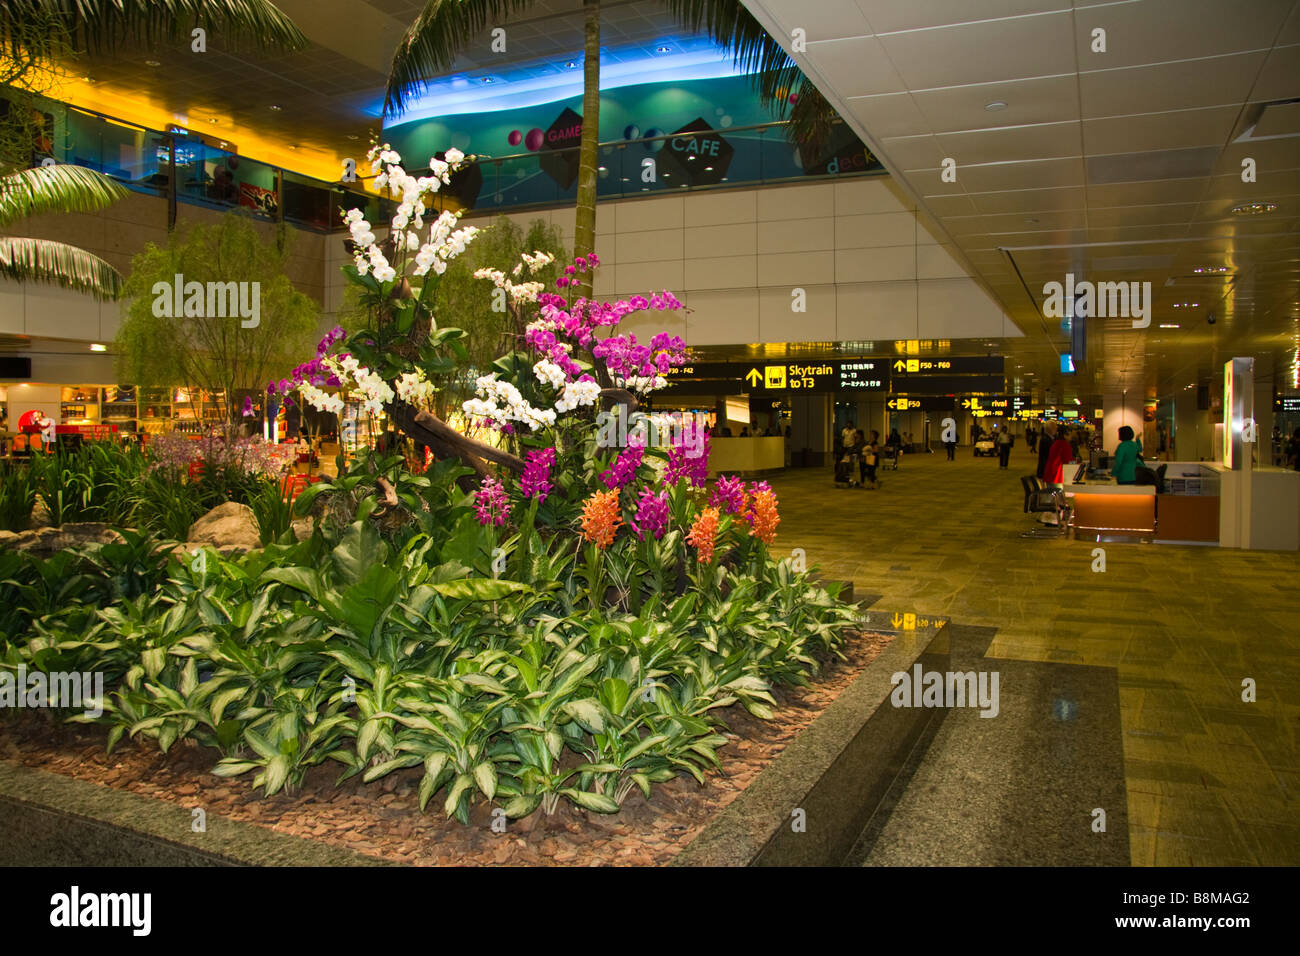 Orchid Gardens Singapore Changi Airport   Stock Image